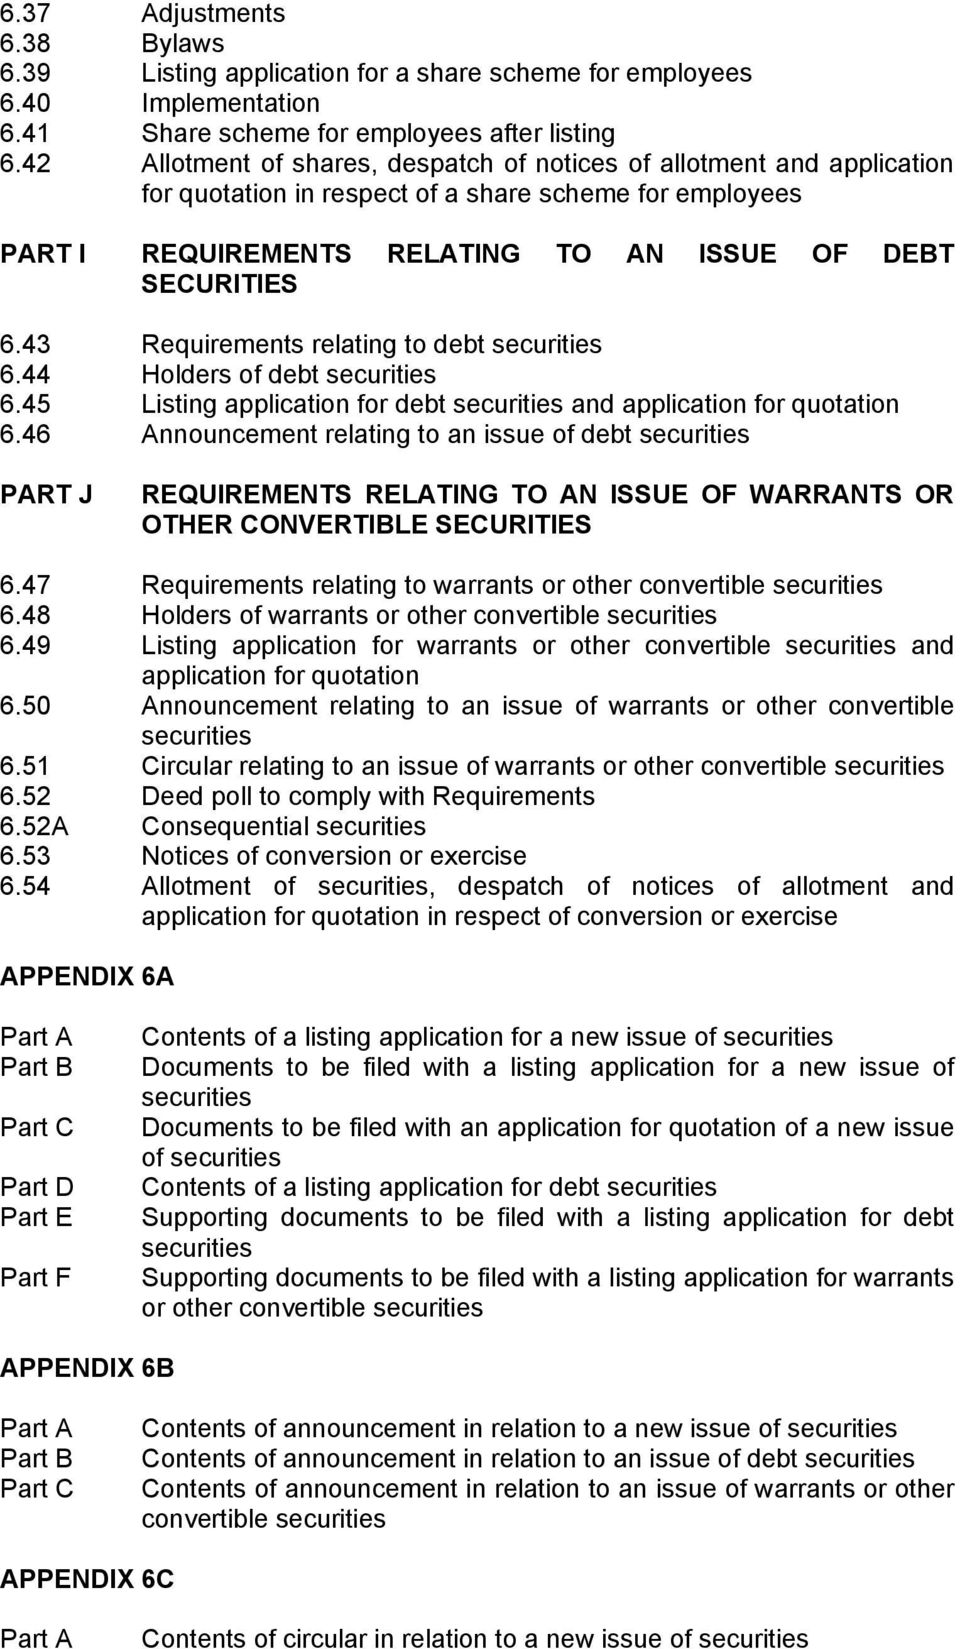 43 Requirements relating to debt securities 6.44 Holders of debt securities 6.45 Listing application for debt securities and application for quotation 6.